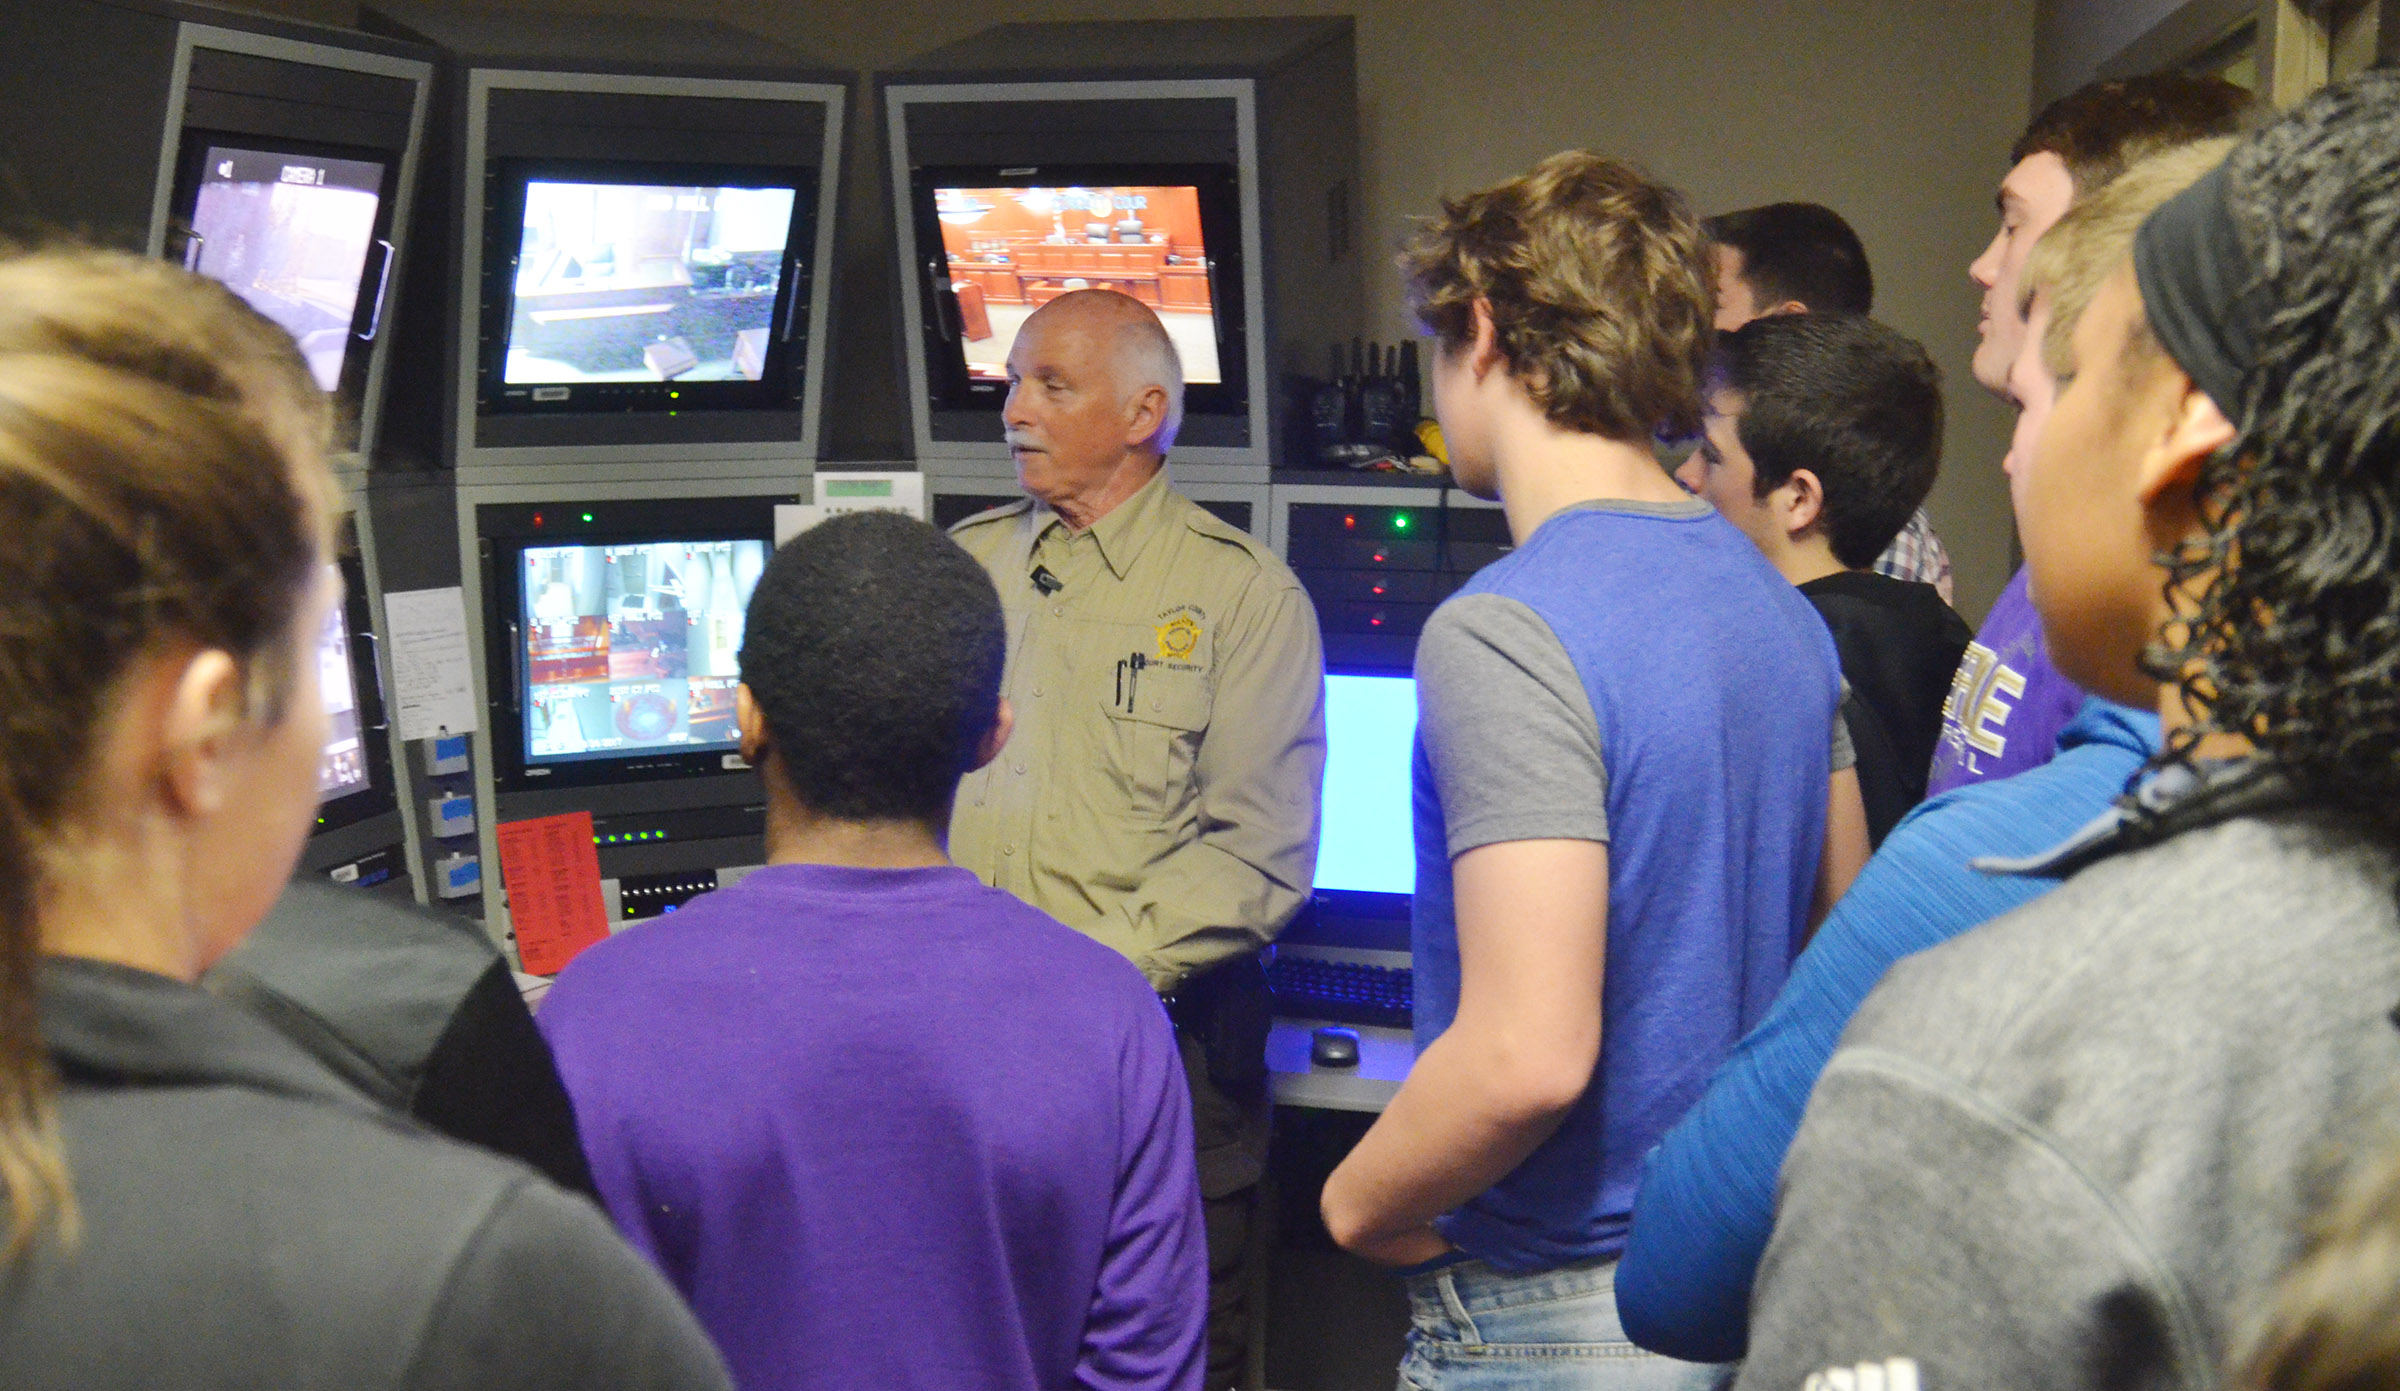 Kenny Anderson, a security officer at Taylor County Judicial Center, shows CHS sophomores how the security cameras record what happens at the judicial center.